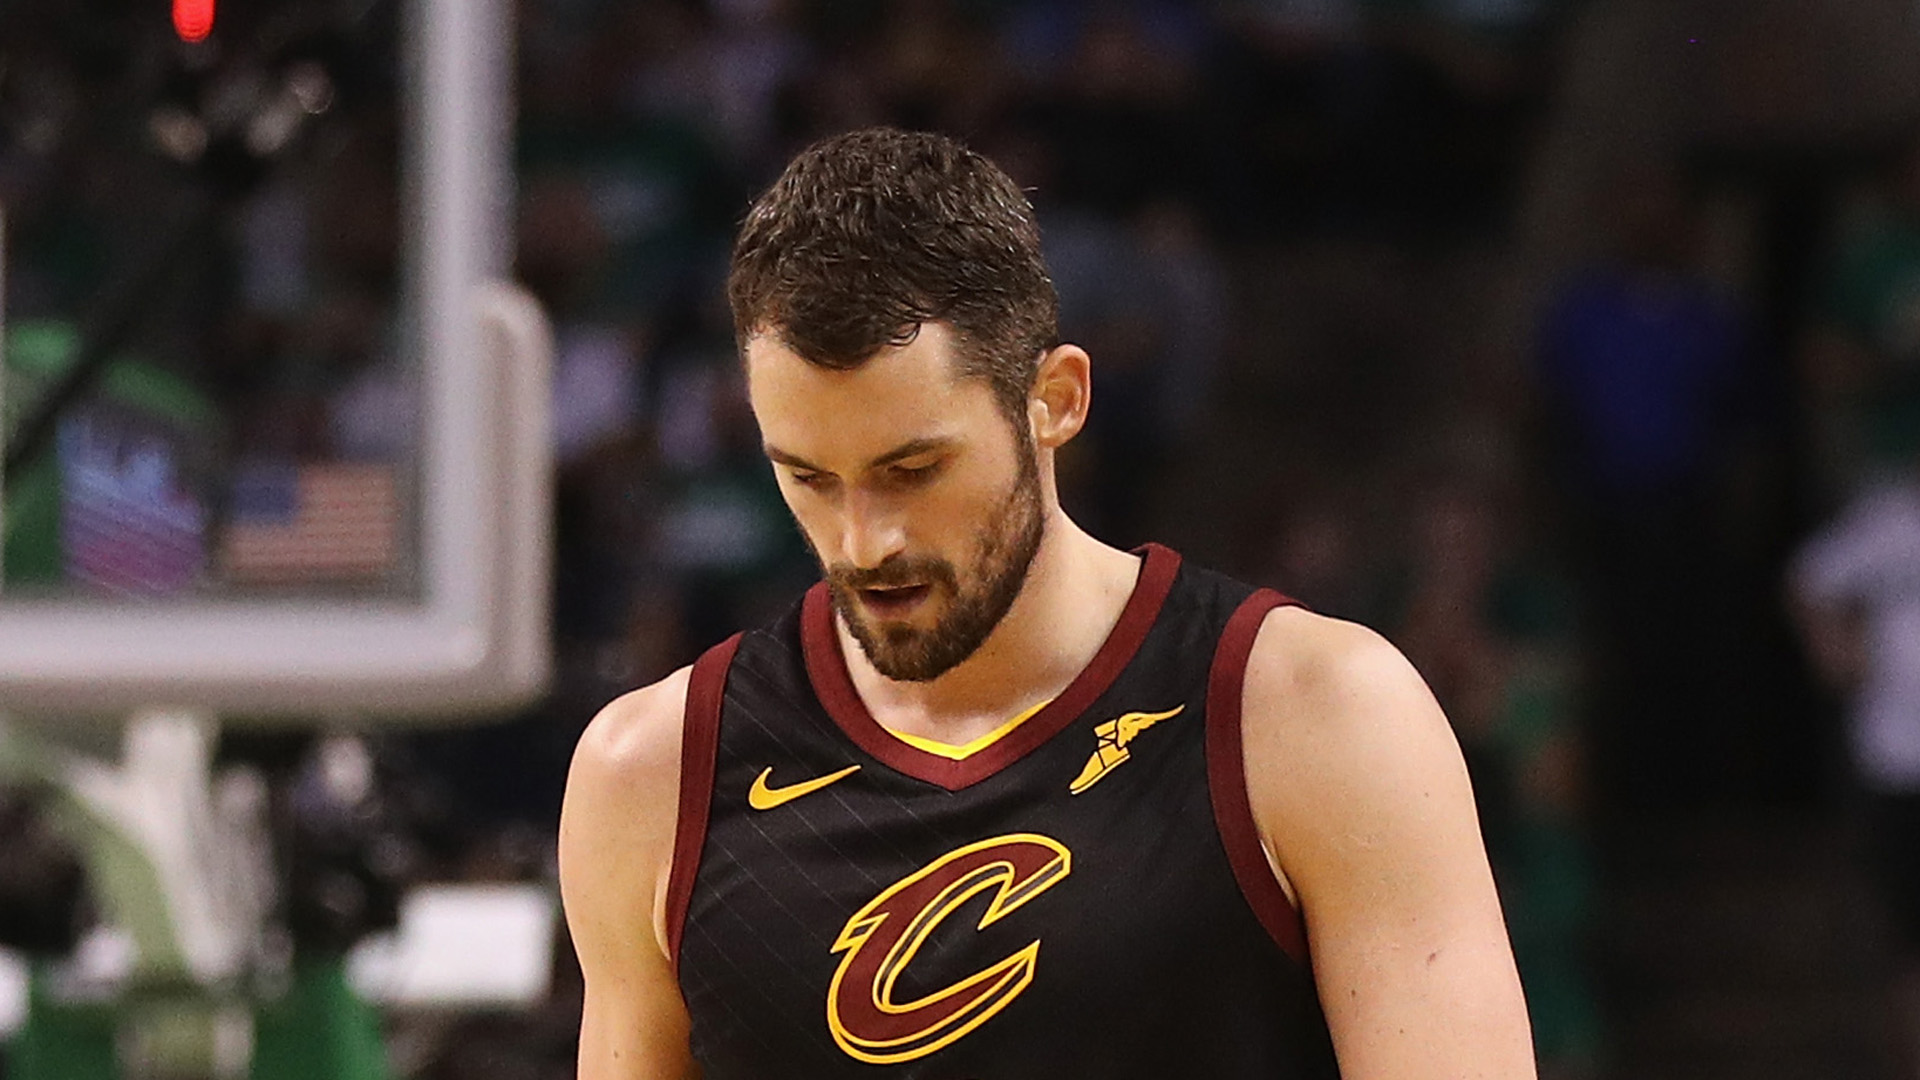 Cavs star Love expects to be out until 2019